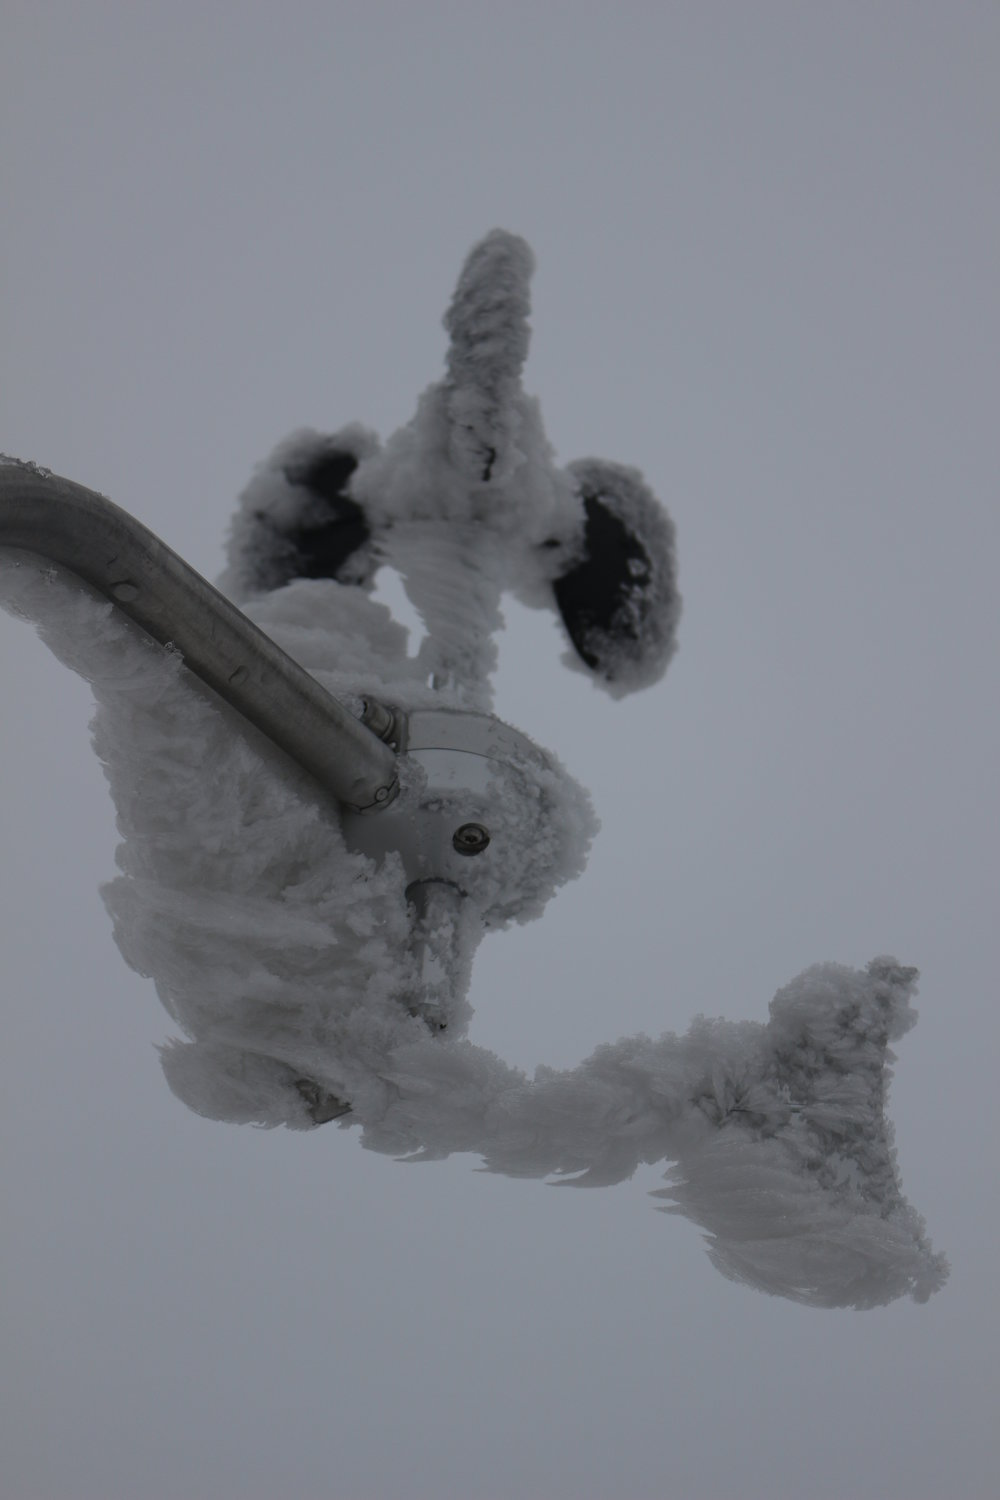 Showing severe icing on an anemometer and wind vane